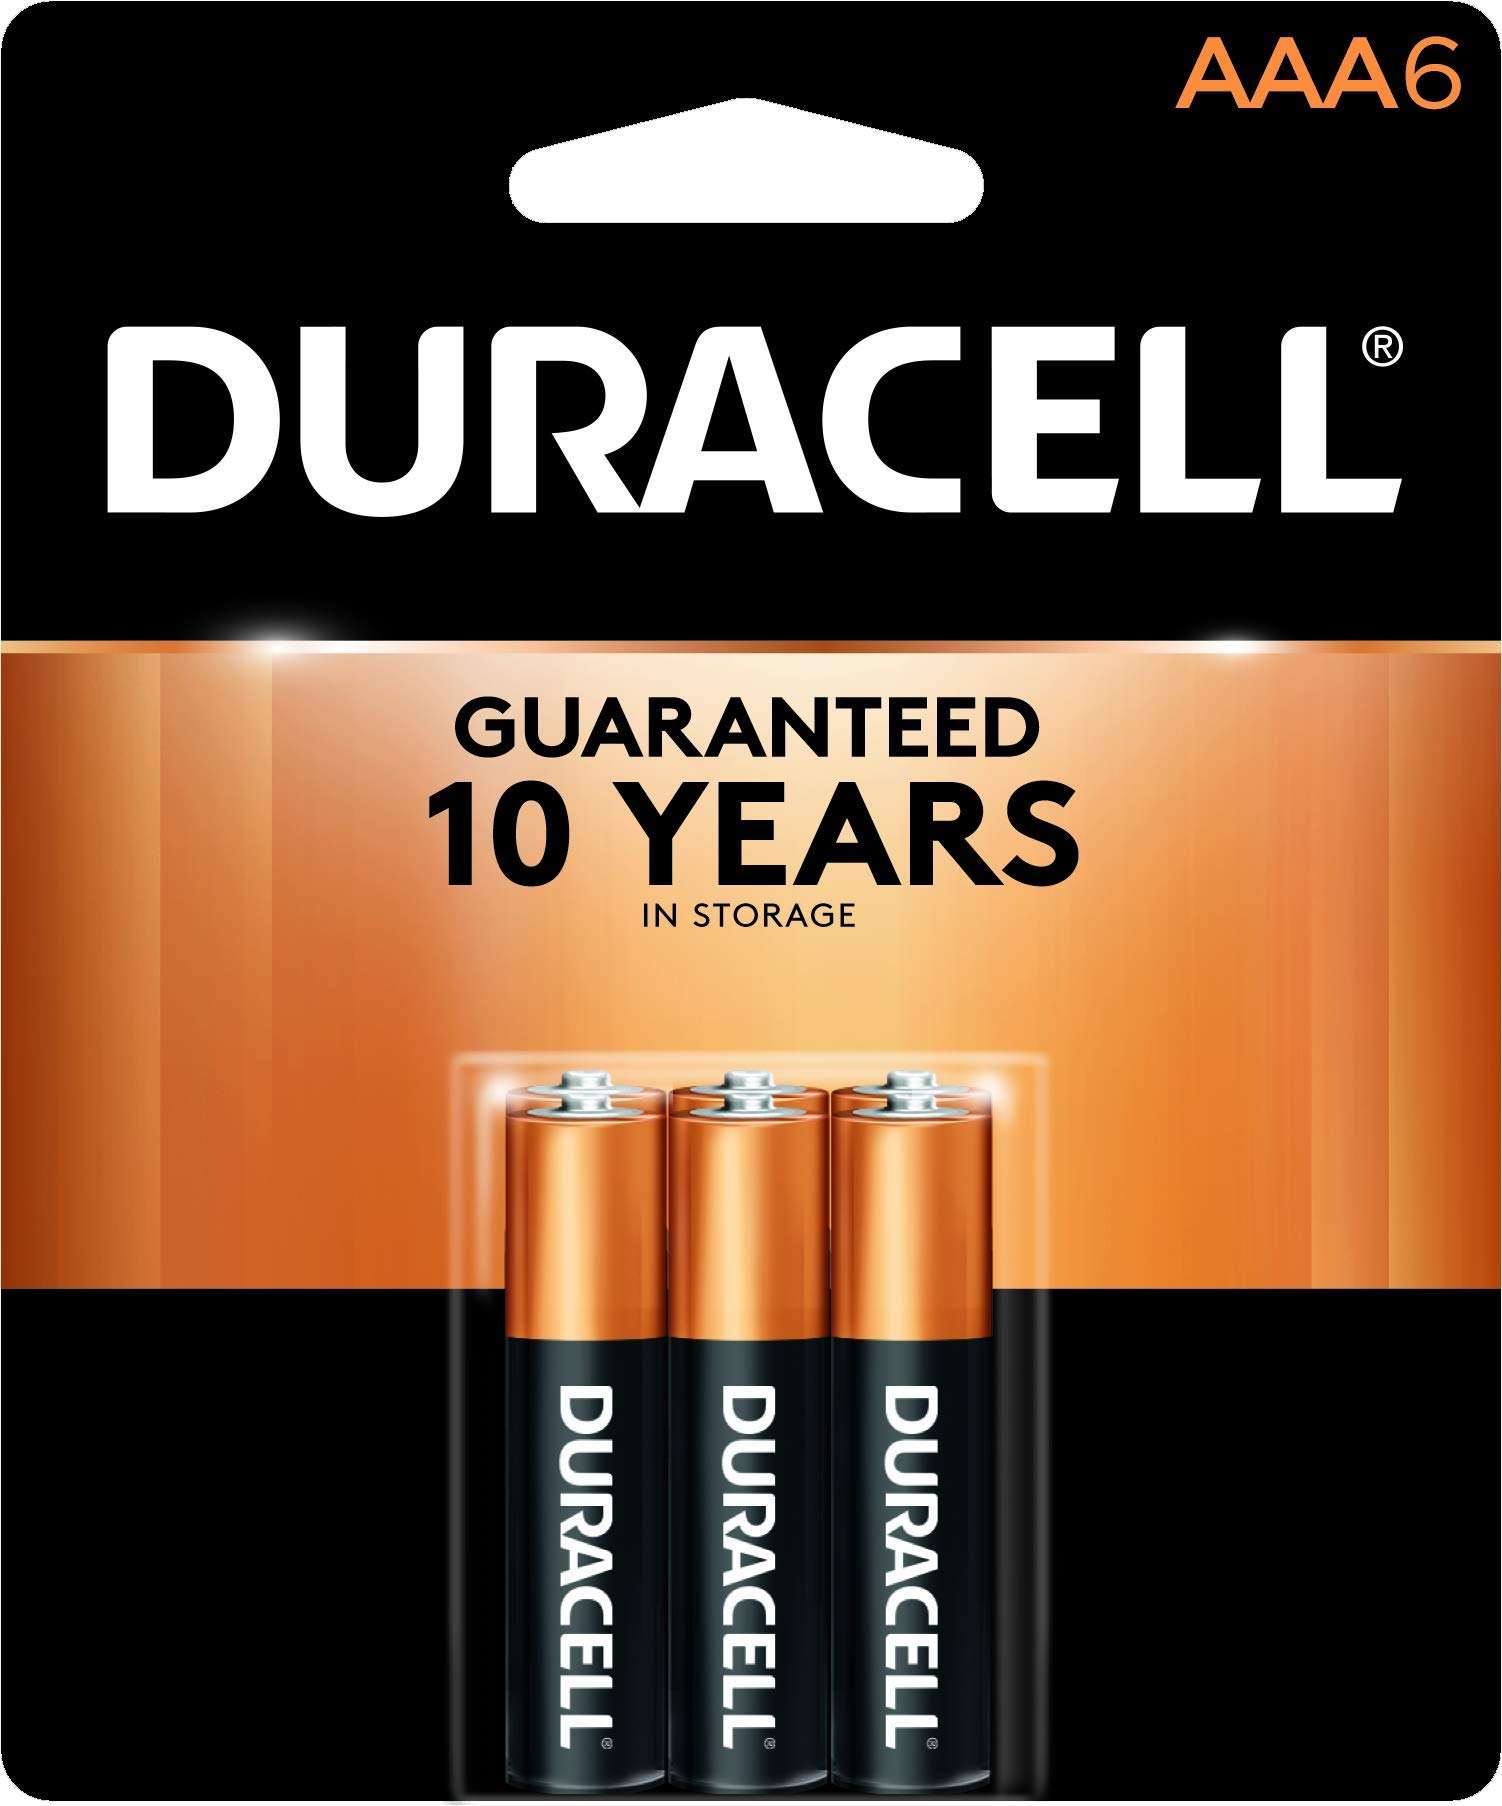 Duracell - CopperTop AAA Alkaline Batteries - long lasting, all-purpose Triple A battery for household and business - 6 Count